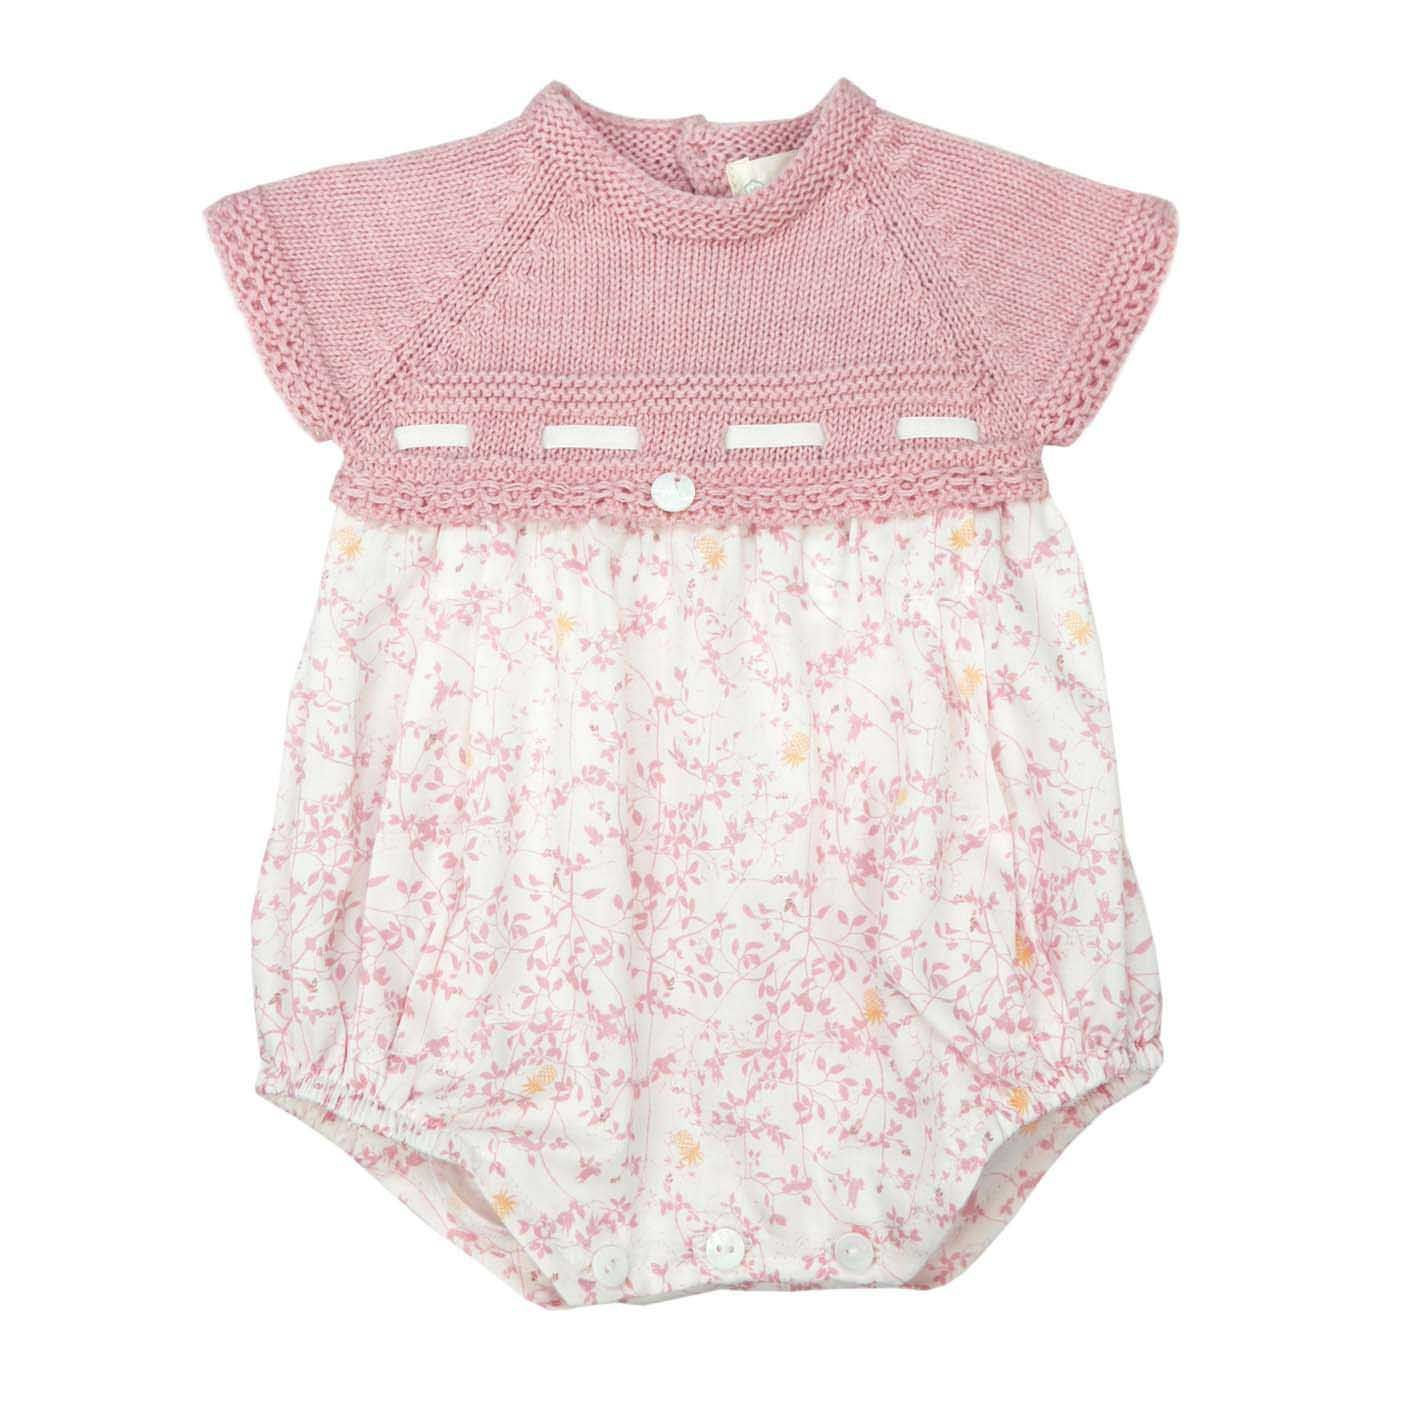 Wedoble ribbon rose romper Portuguese baby clothes